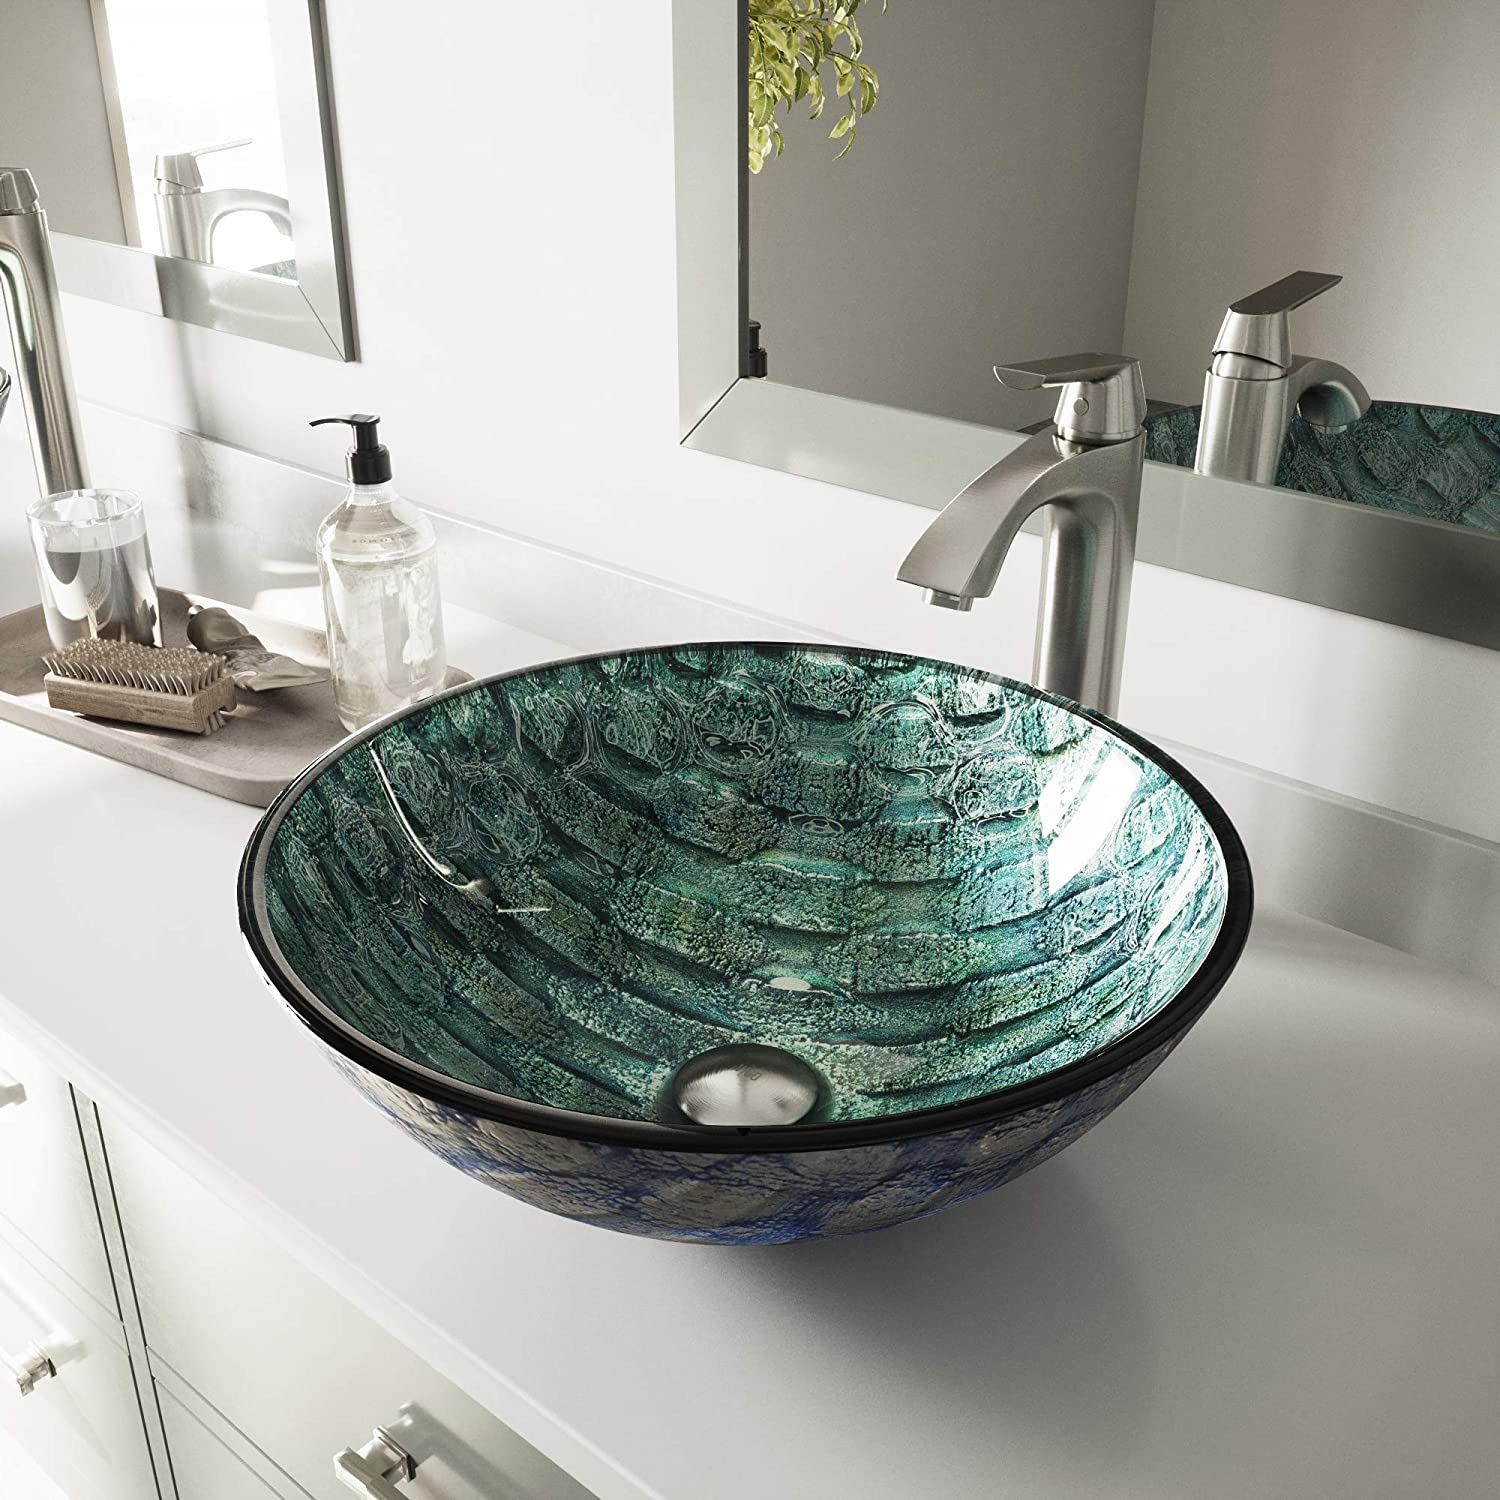 VIGO VG07049 Glass Above counter Round Bathroom Sink, 16.5 x 16.5 x 6 inches, Aqua Blue And Sea Green Oceania